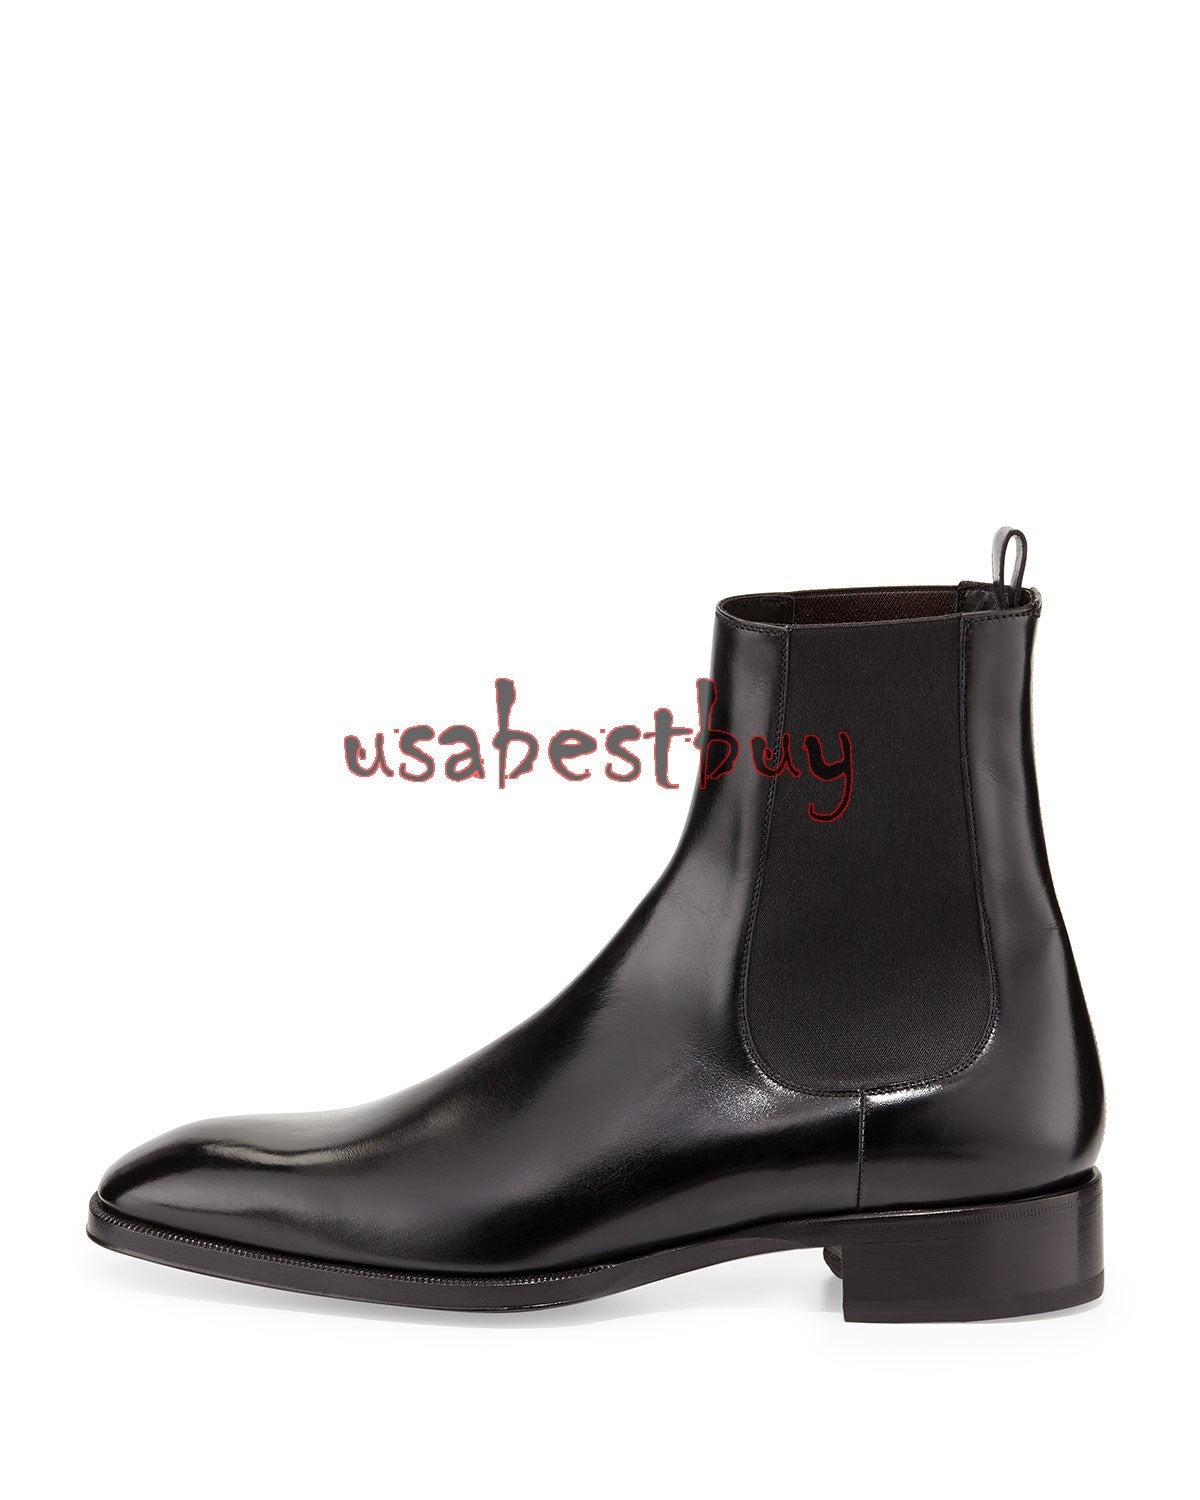 New Handmade Latest Stylish Black Leather Chelsea Boots, Men Real leather boots